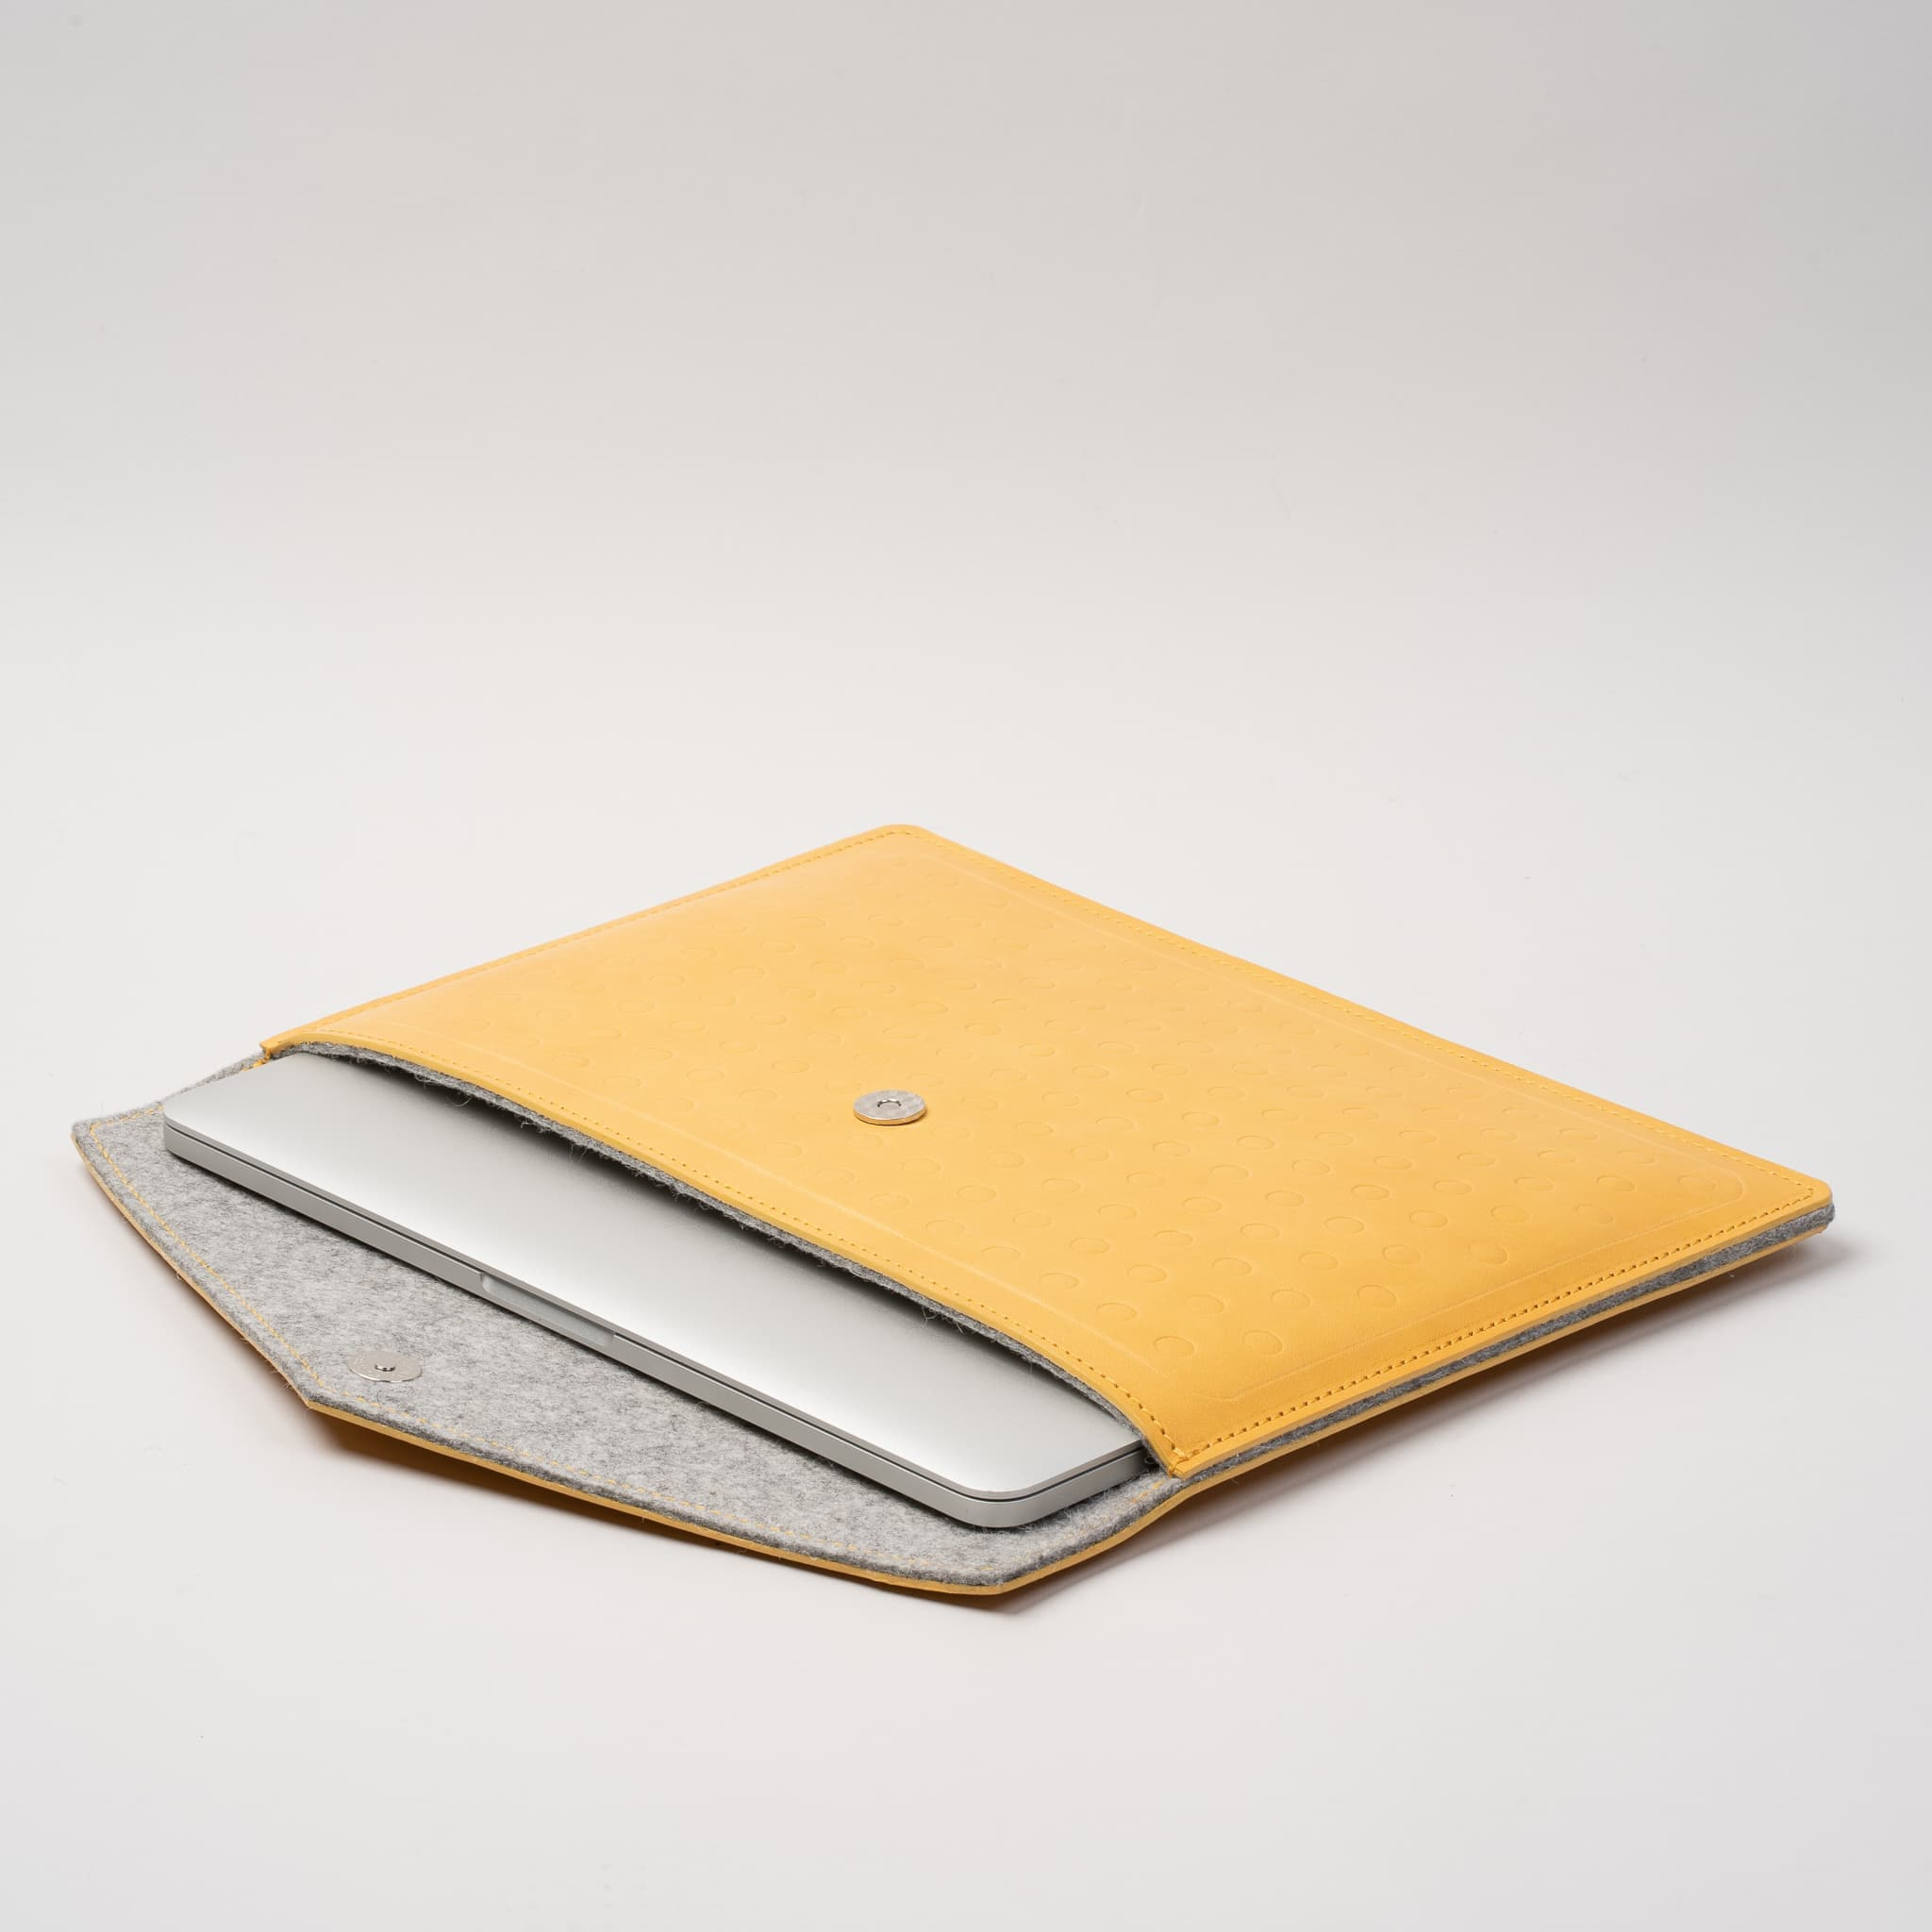 macbook air yellow case